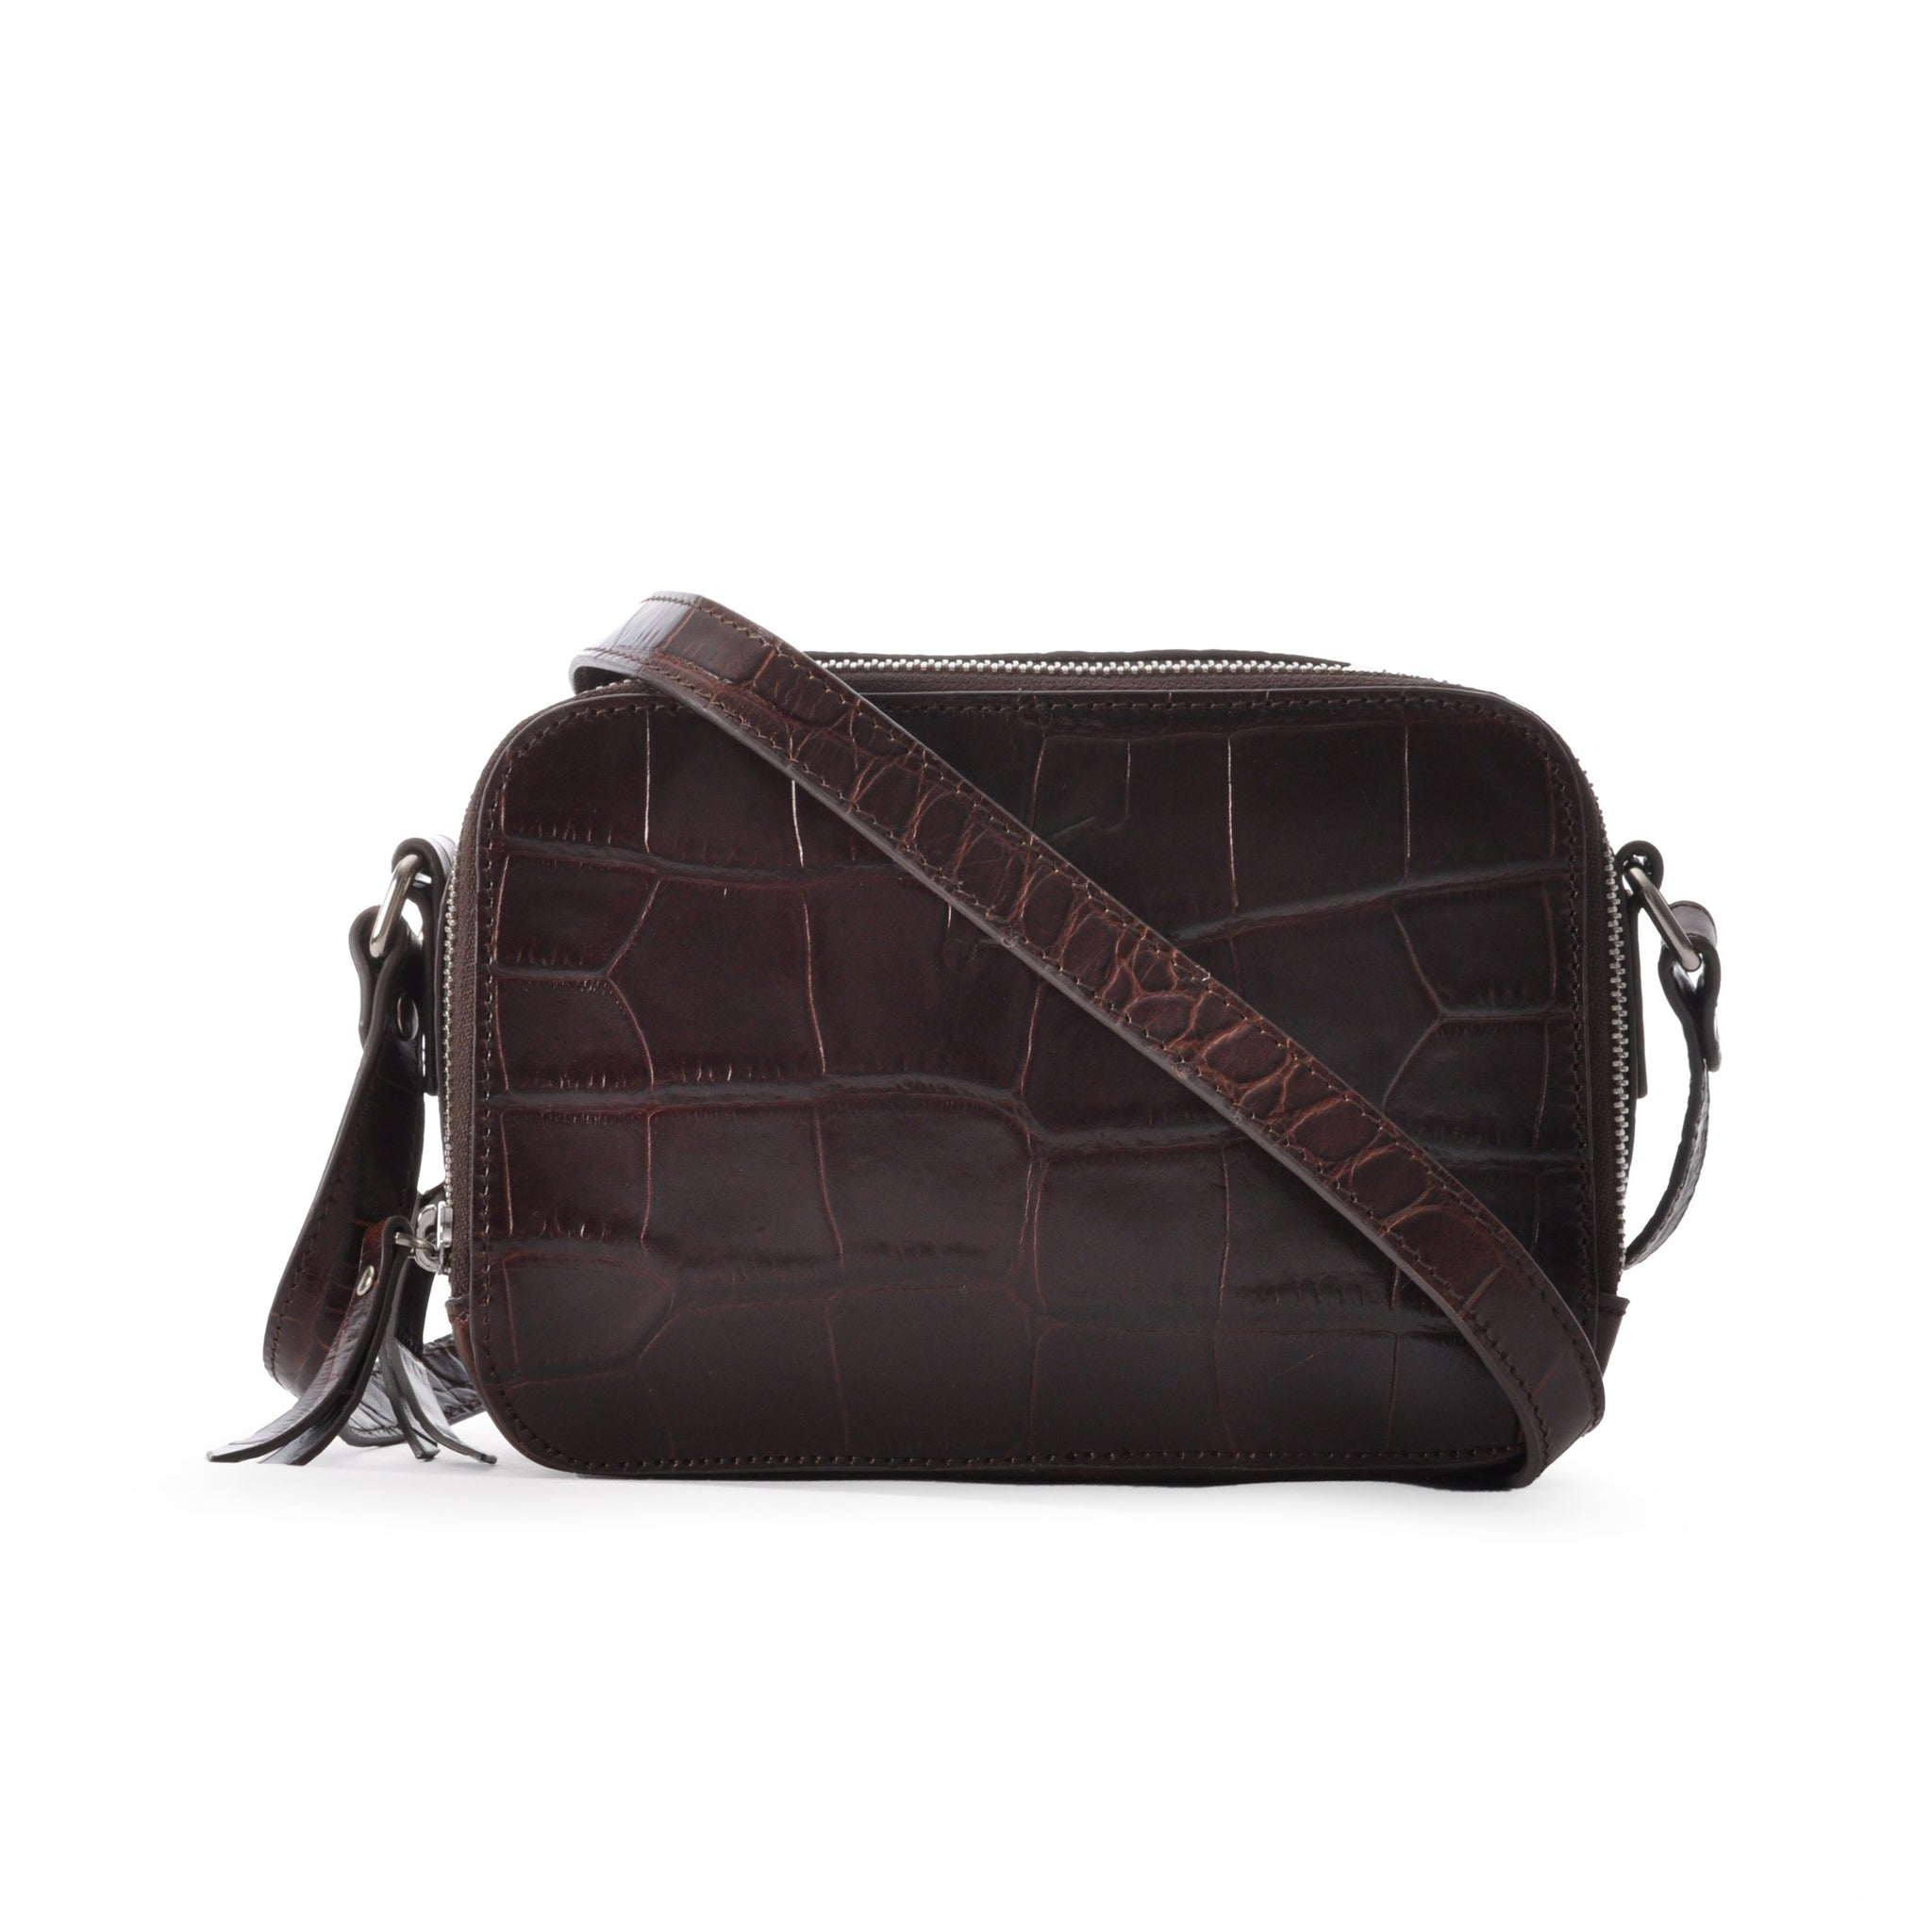 Crossbody Bag | Brown Croco | Embossed Leather - STOCKHOLM